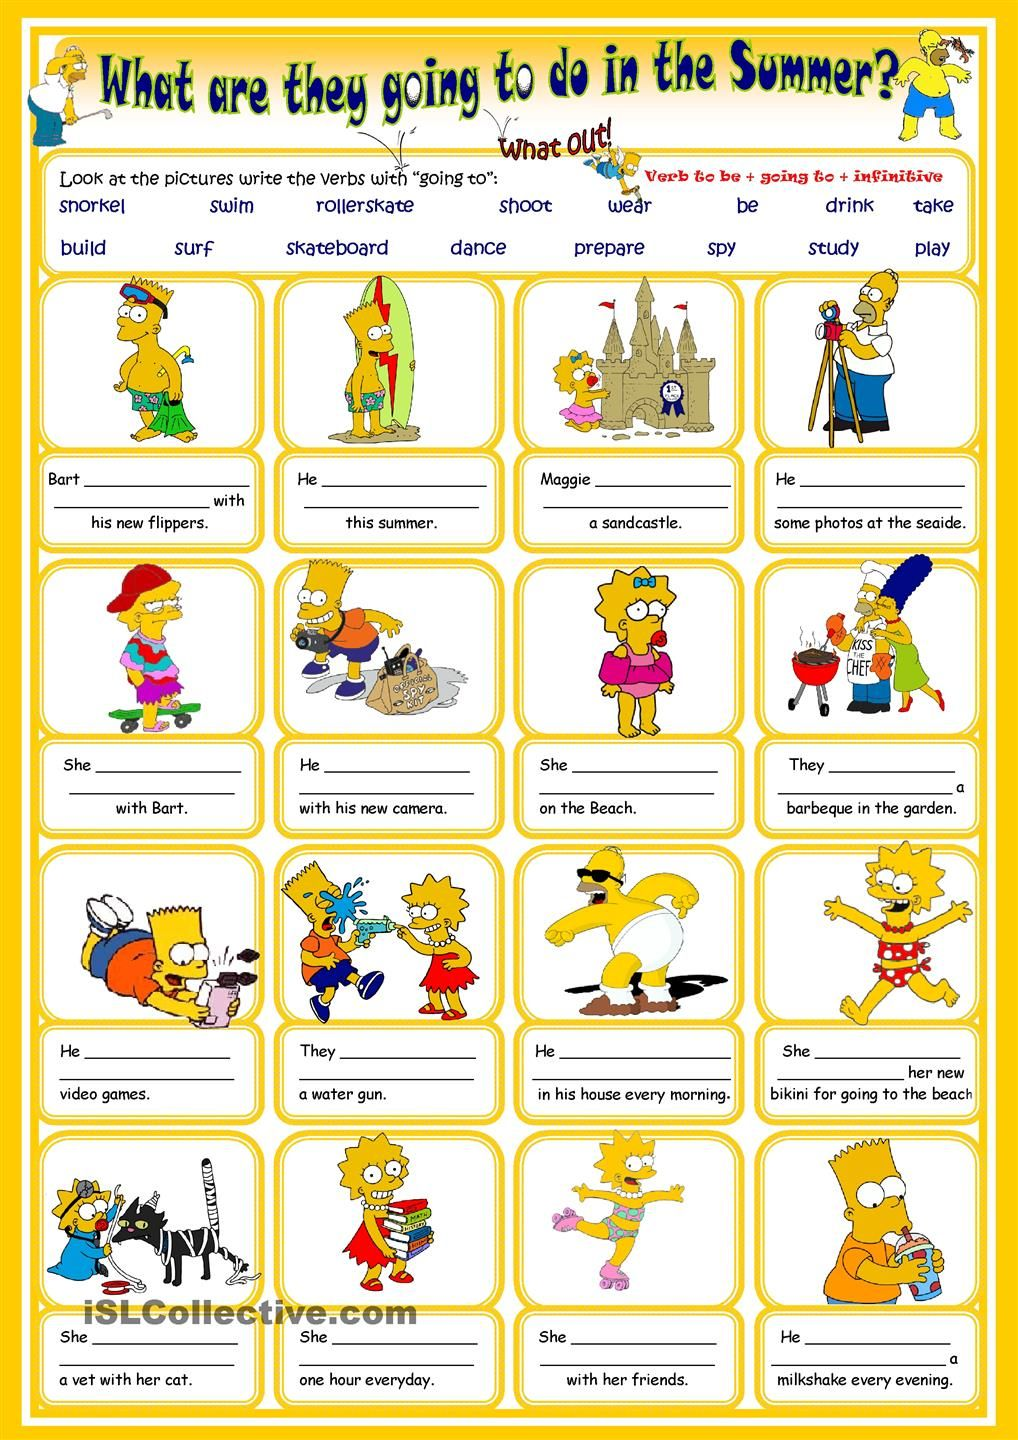 Simpsons Summer With Going To English Lessons For Kids English Activities English Lessons [ 1440 x 1018 Pixel ]